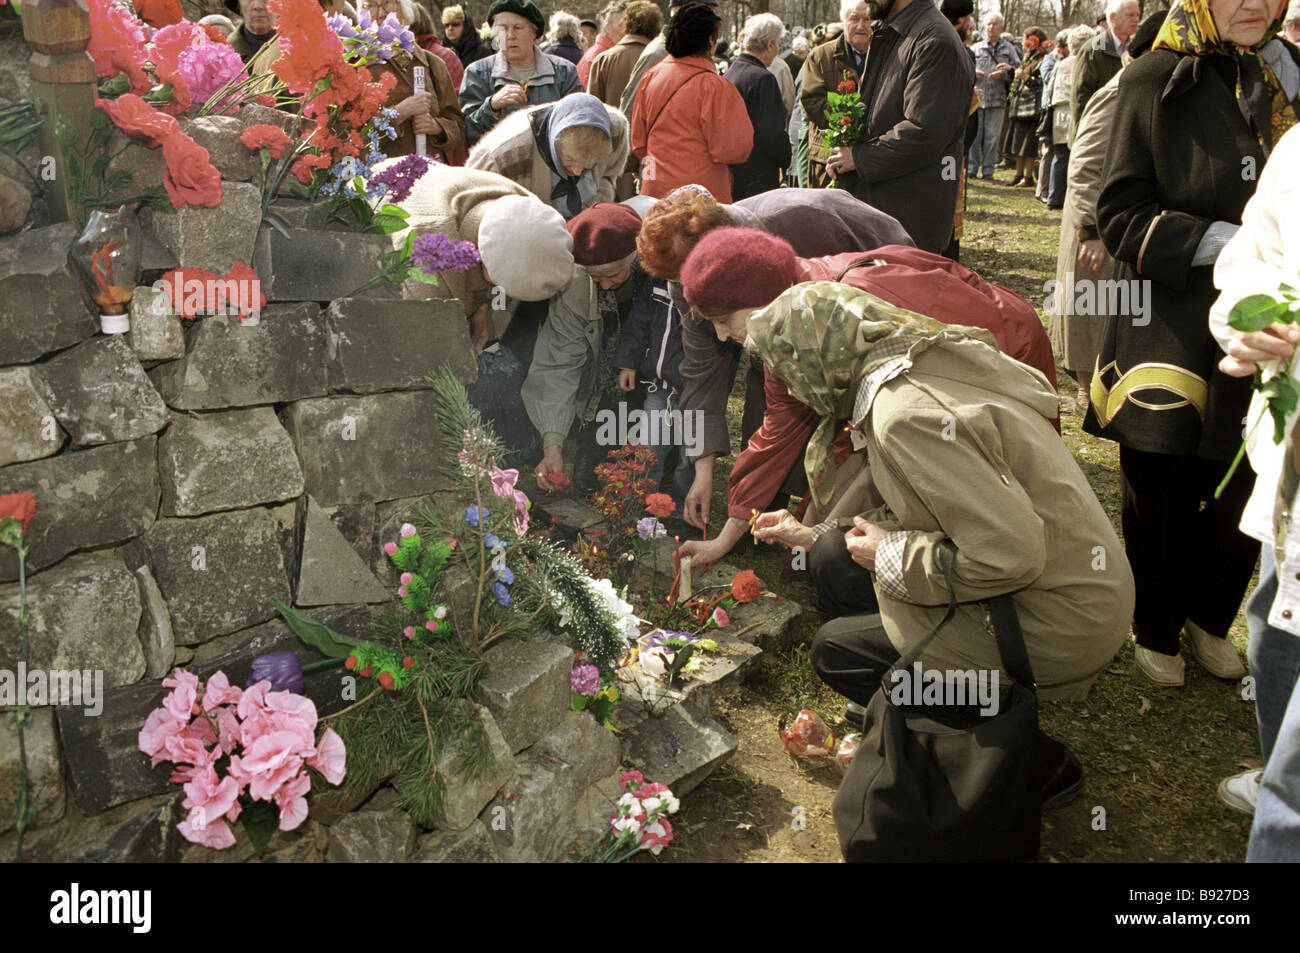 Laying flowers to the common grave of Stalinist victims who found their death by the firing squad at the NKVD shooting - Stock Image